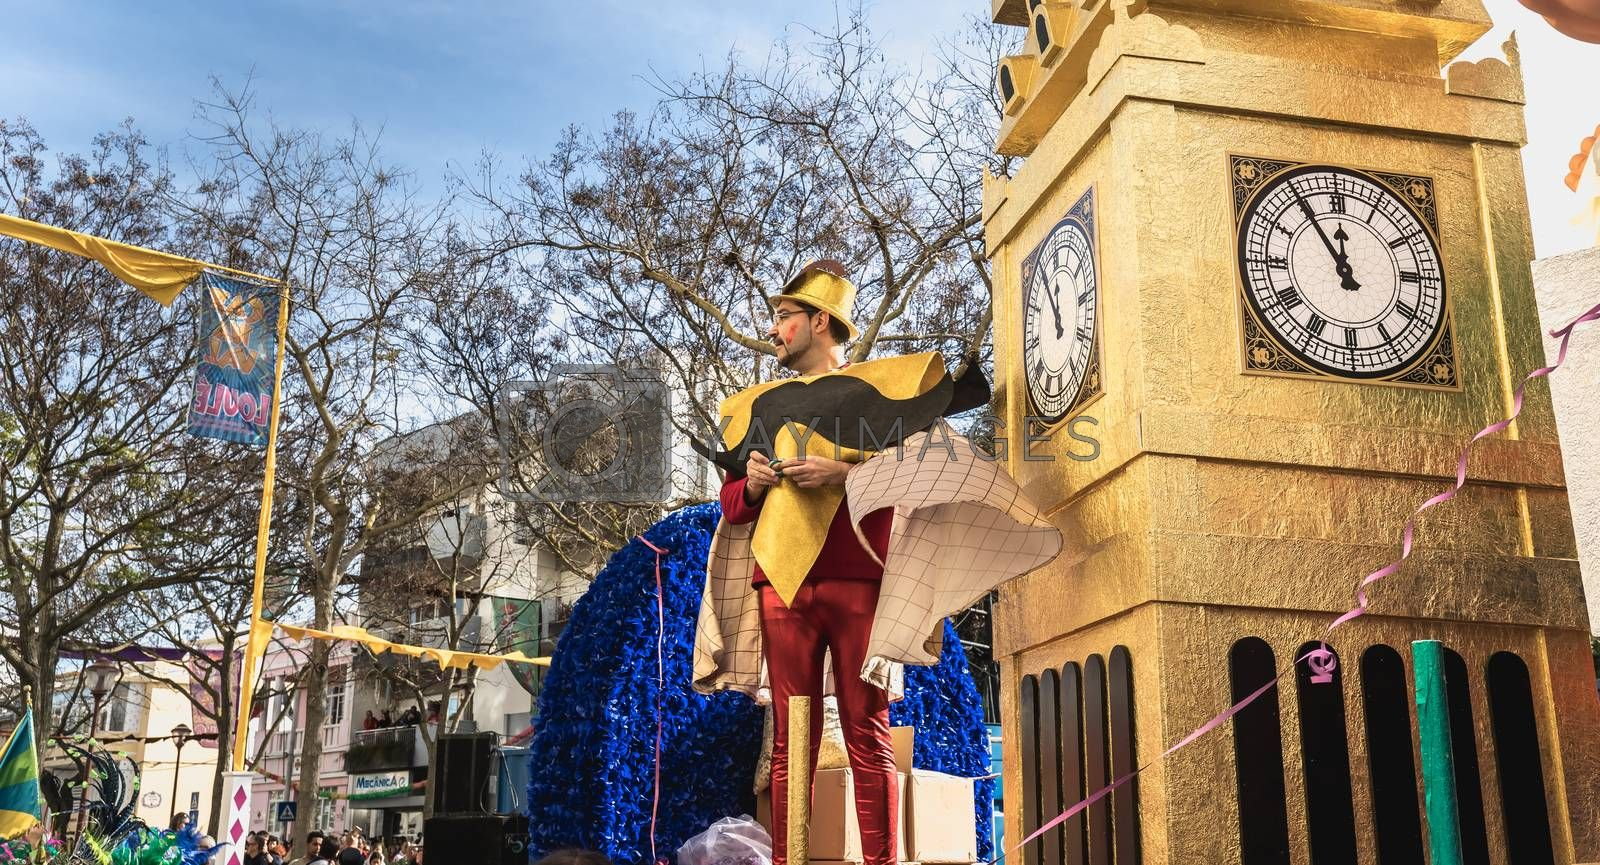 Loule, Portugal - February 25, 2020: BREXIT float parading in the street in front of the public in the parade of the traditional carnival of Loule city on a February day